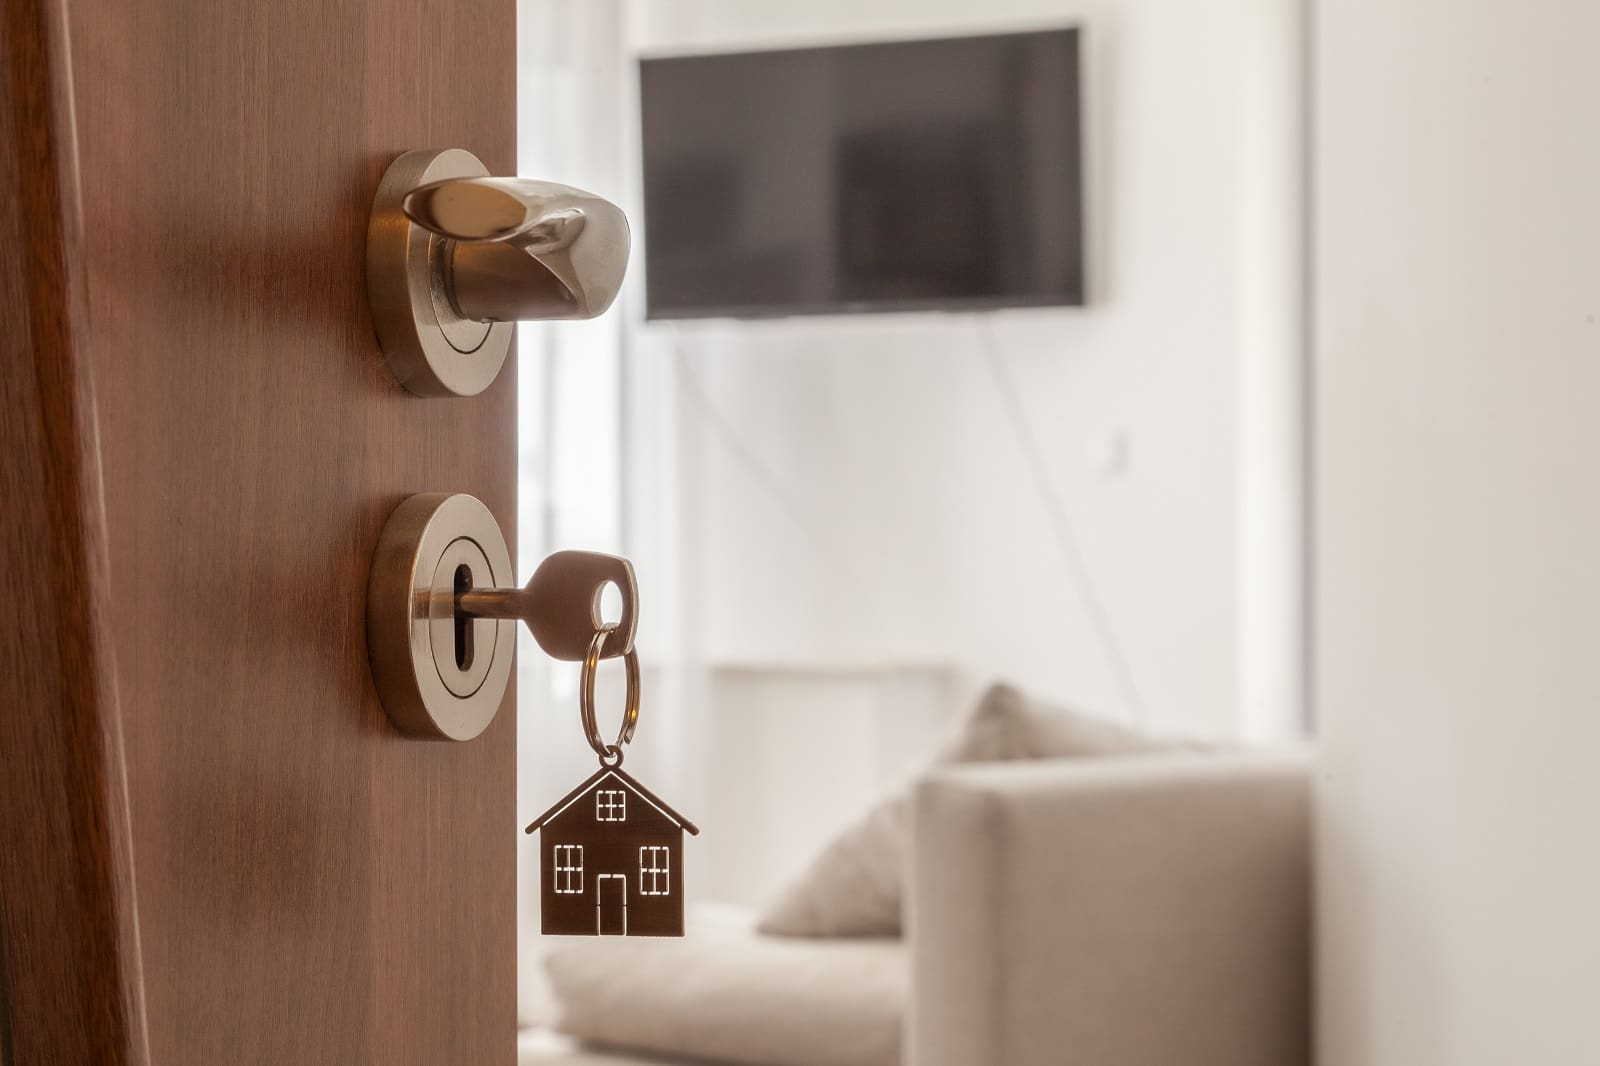 5 Tips to Prepare Your New Home Before Moving. The keys to your new home